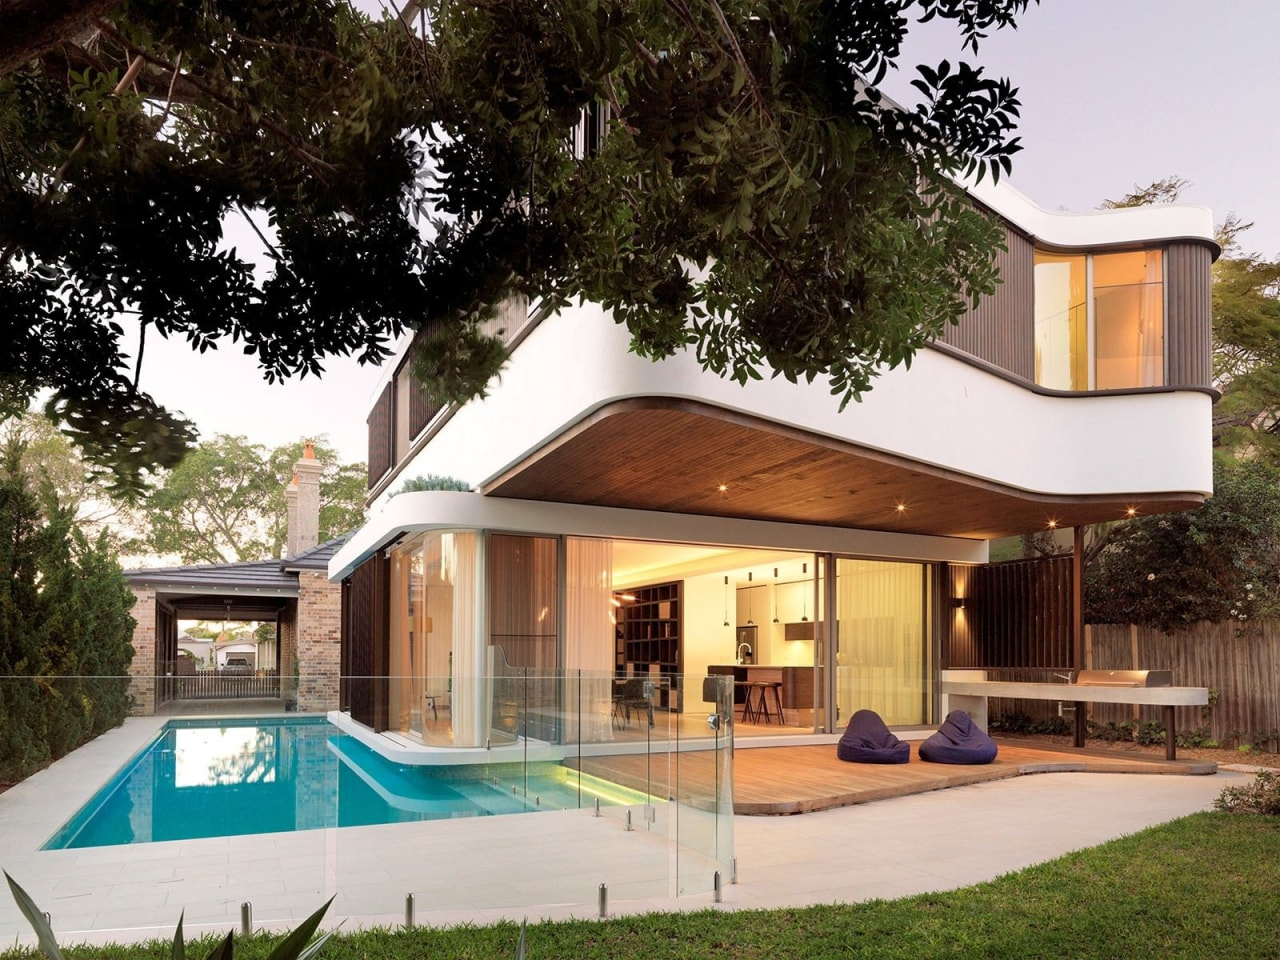 Architect: Luigi RosselliPhotography by Justin Alexander architecture, estate, facade, home, house, property, real estate, residential area, swimming pool, villa, brown, white